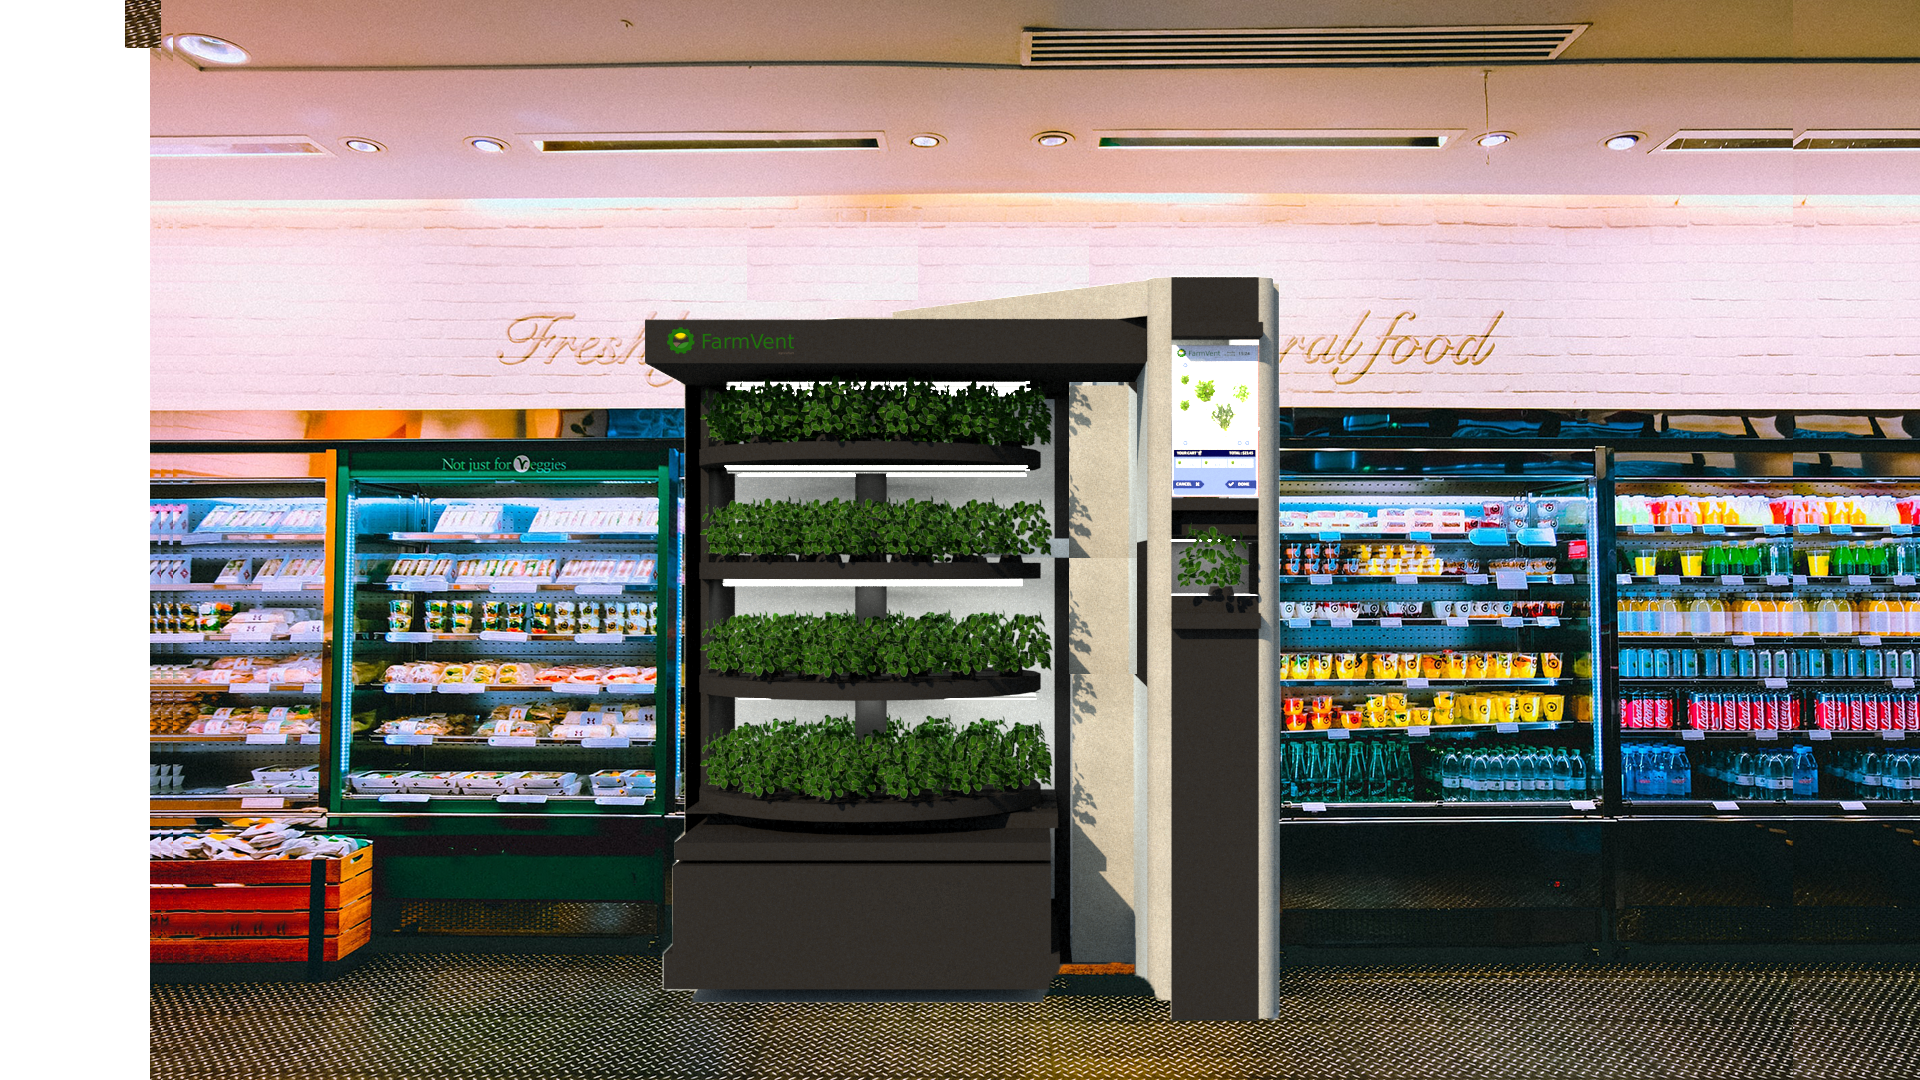 Students design vending machine for herbs